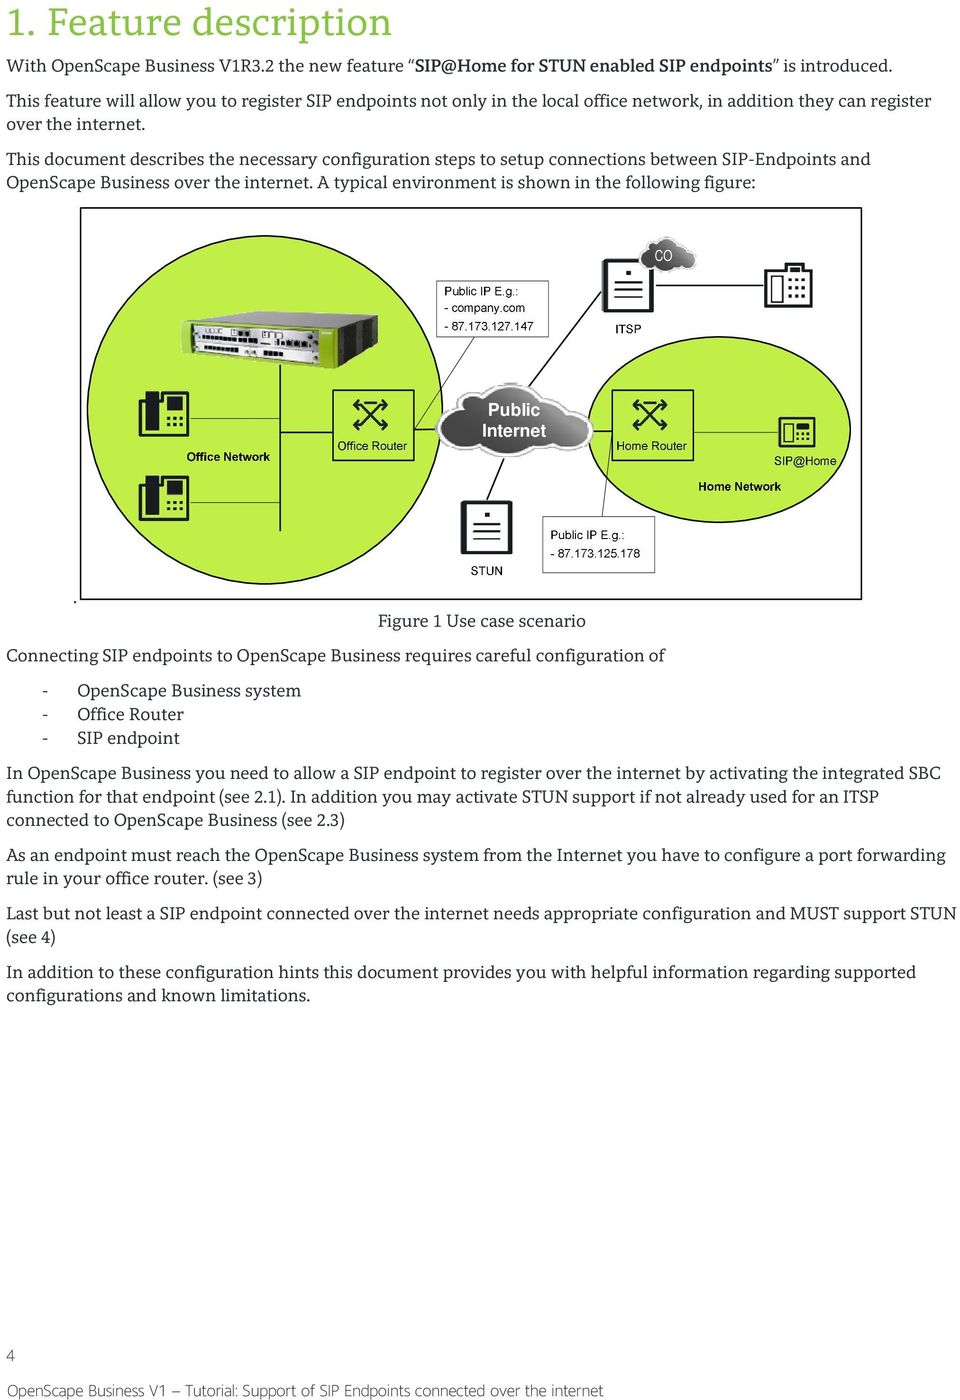 This document describes the necessary configuration steps to setup connections between SIP-Endpoints and OpenScape Business over the internet.